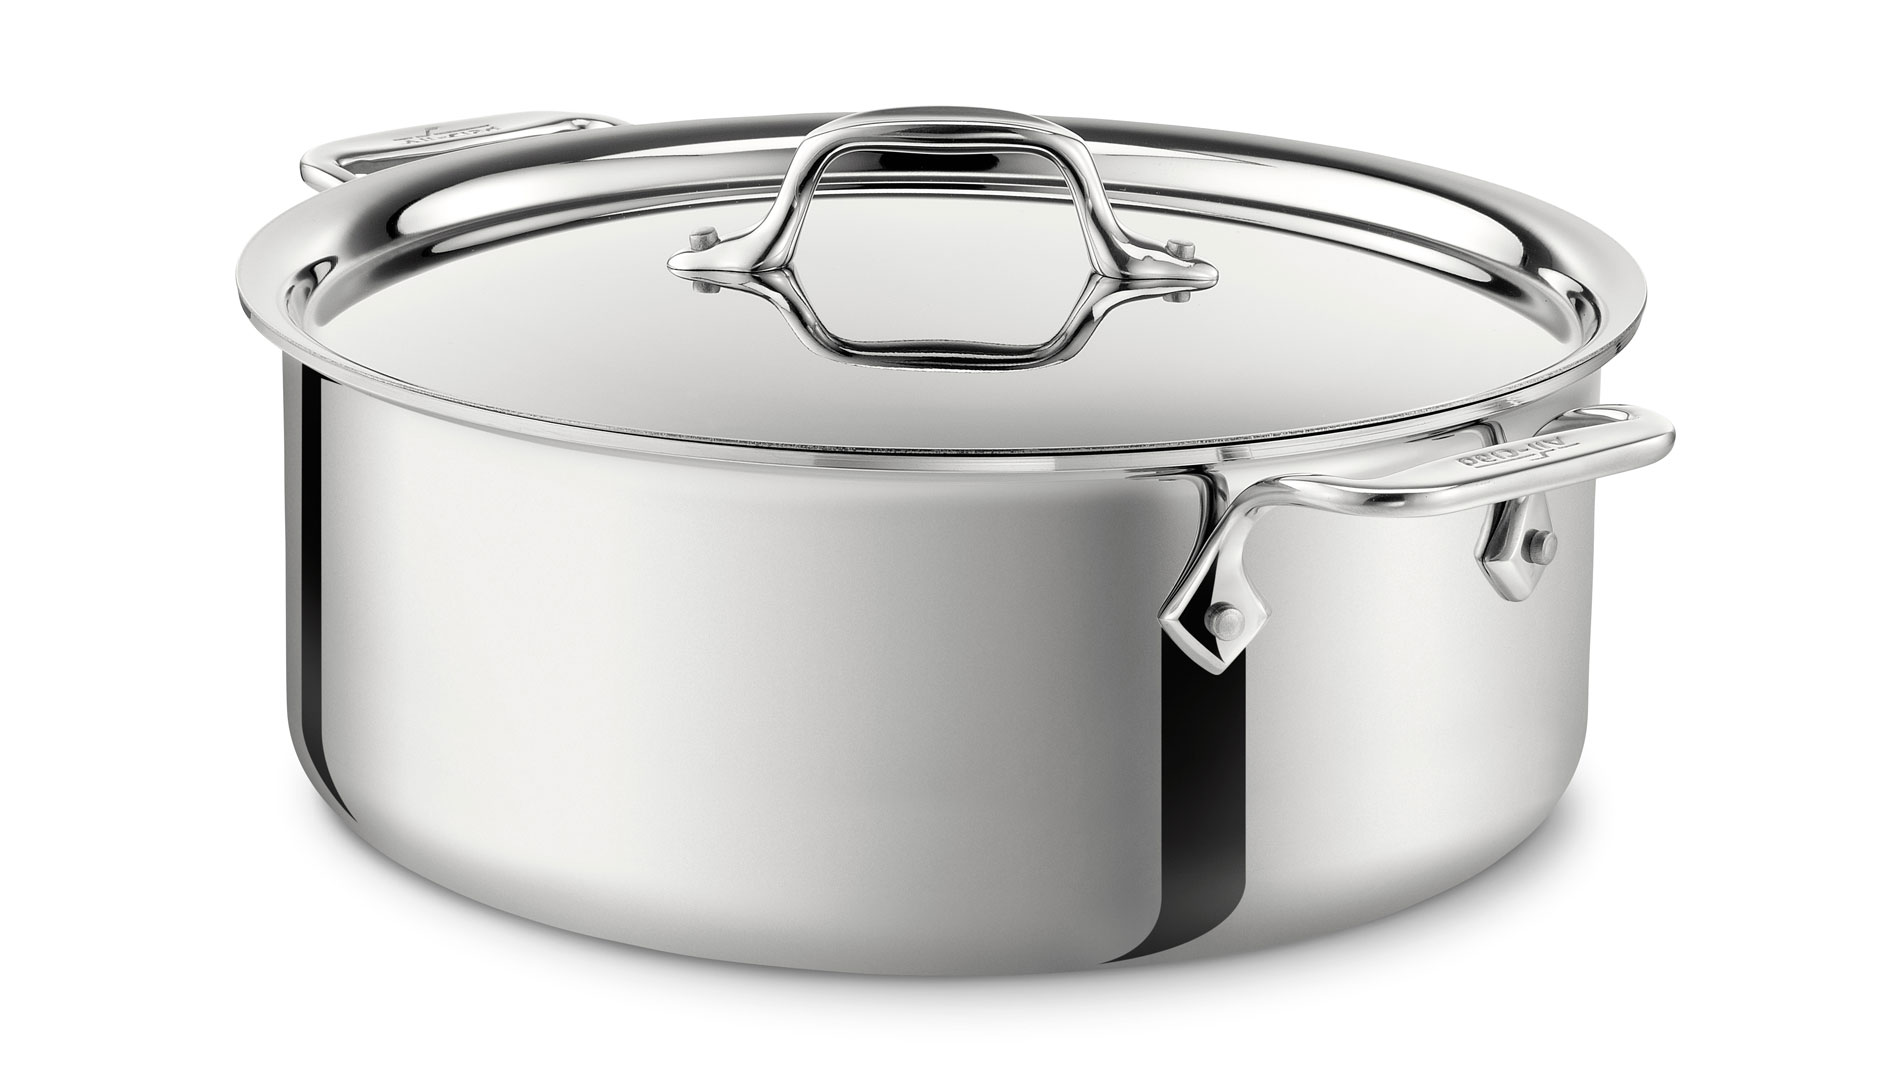 all-clad-stainless-6-qt-stockpot-favorite-kitchen-tools-FT-MAG0717.jpg